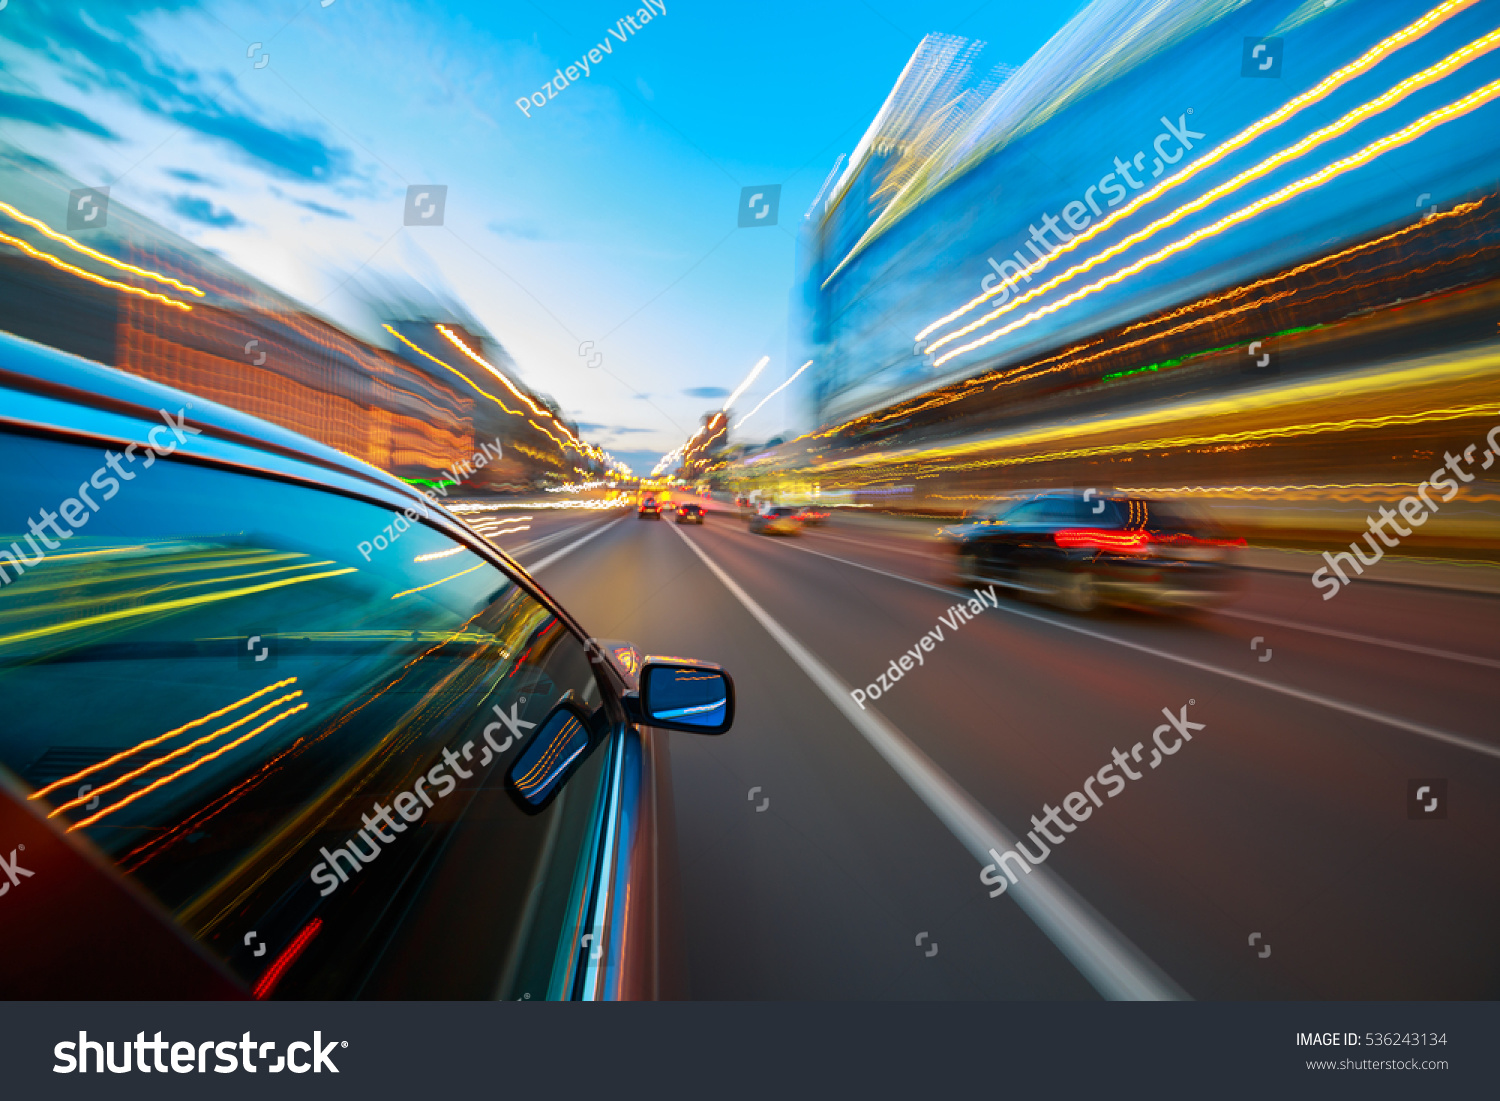 Speeding Car Motion Blur #536243134